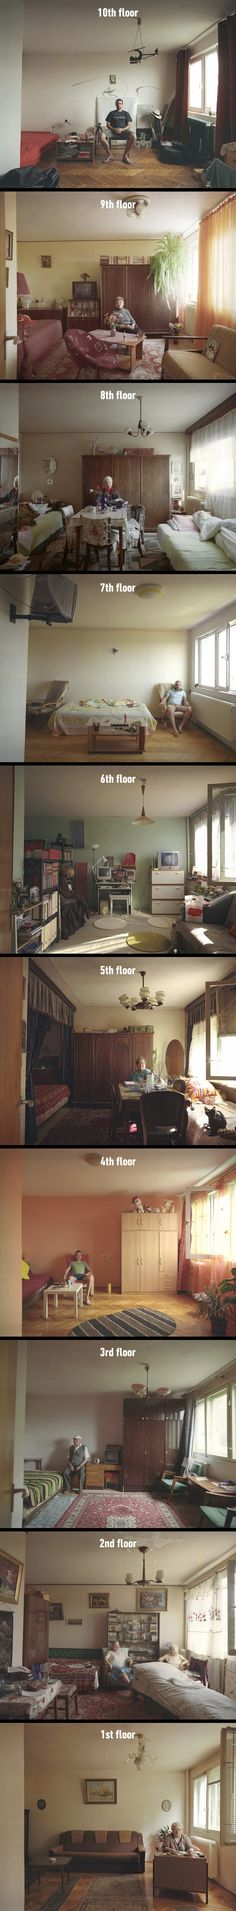 These Fascinating Photographs Show You How Different People Live In Identical…